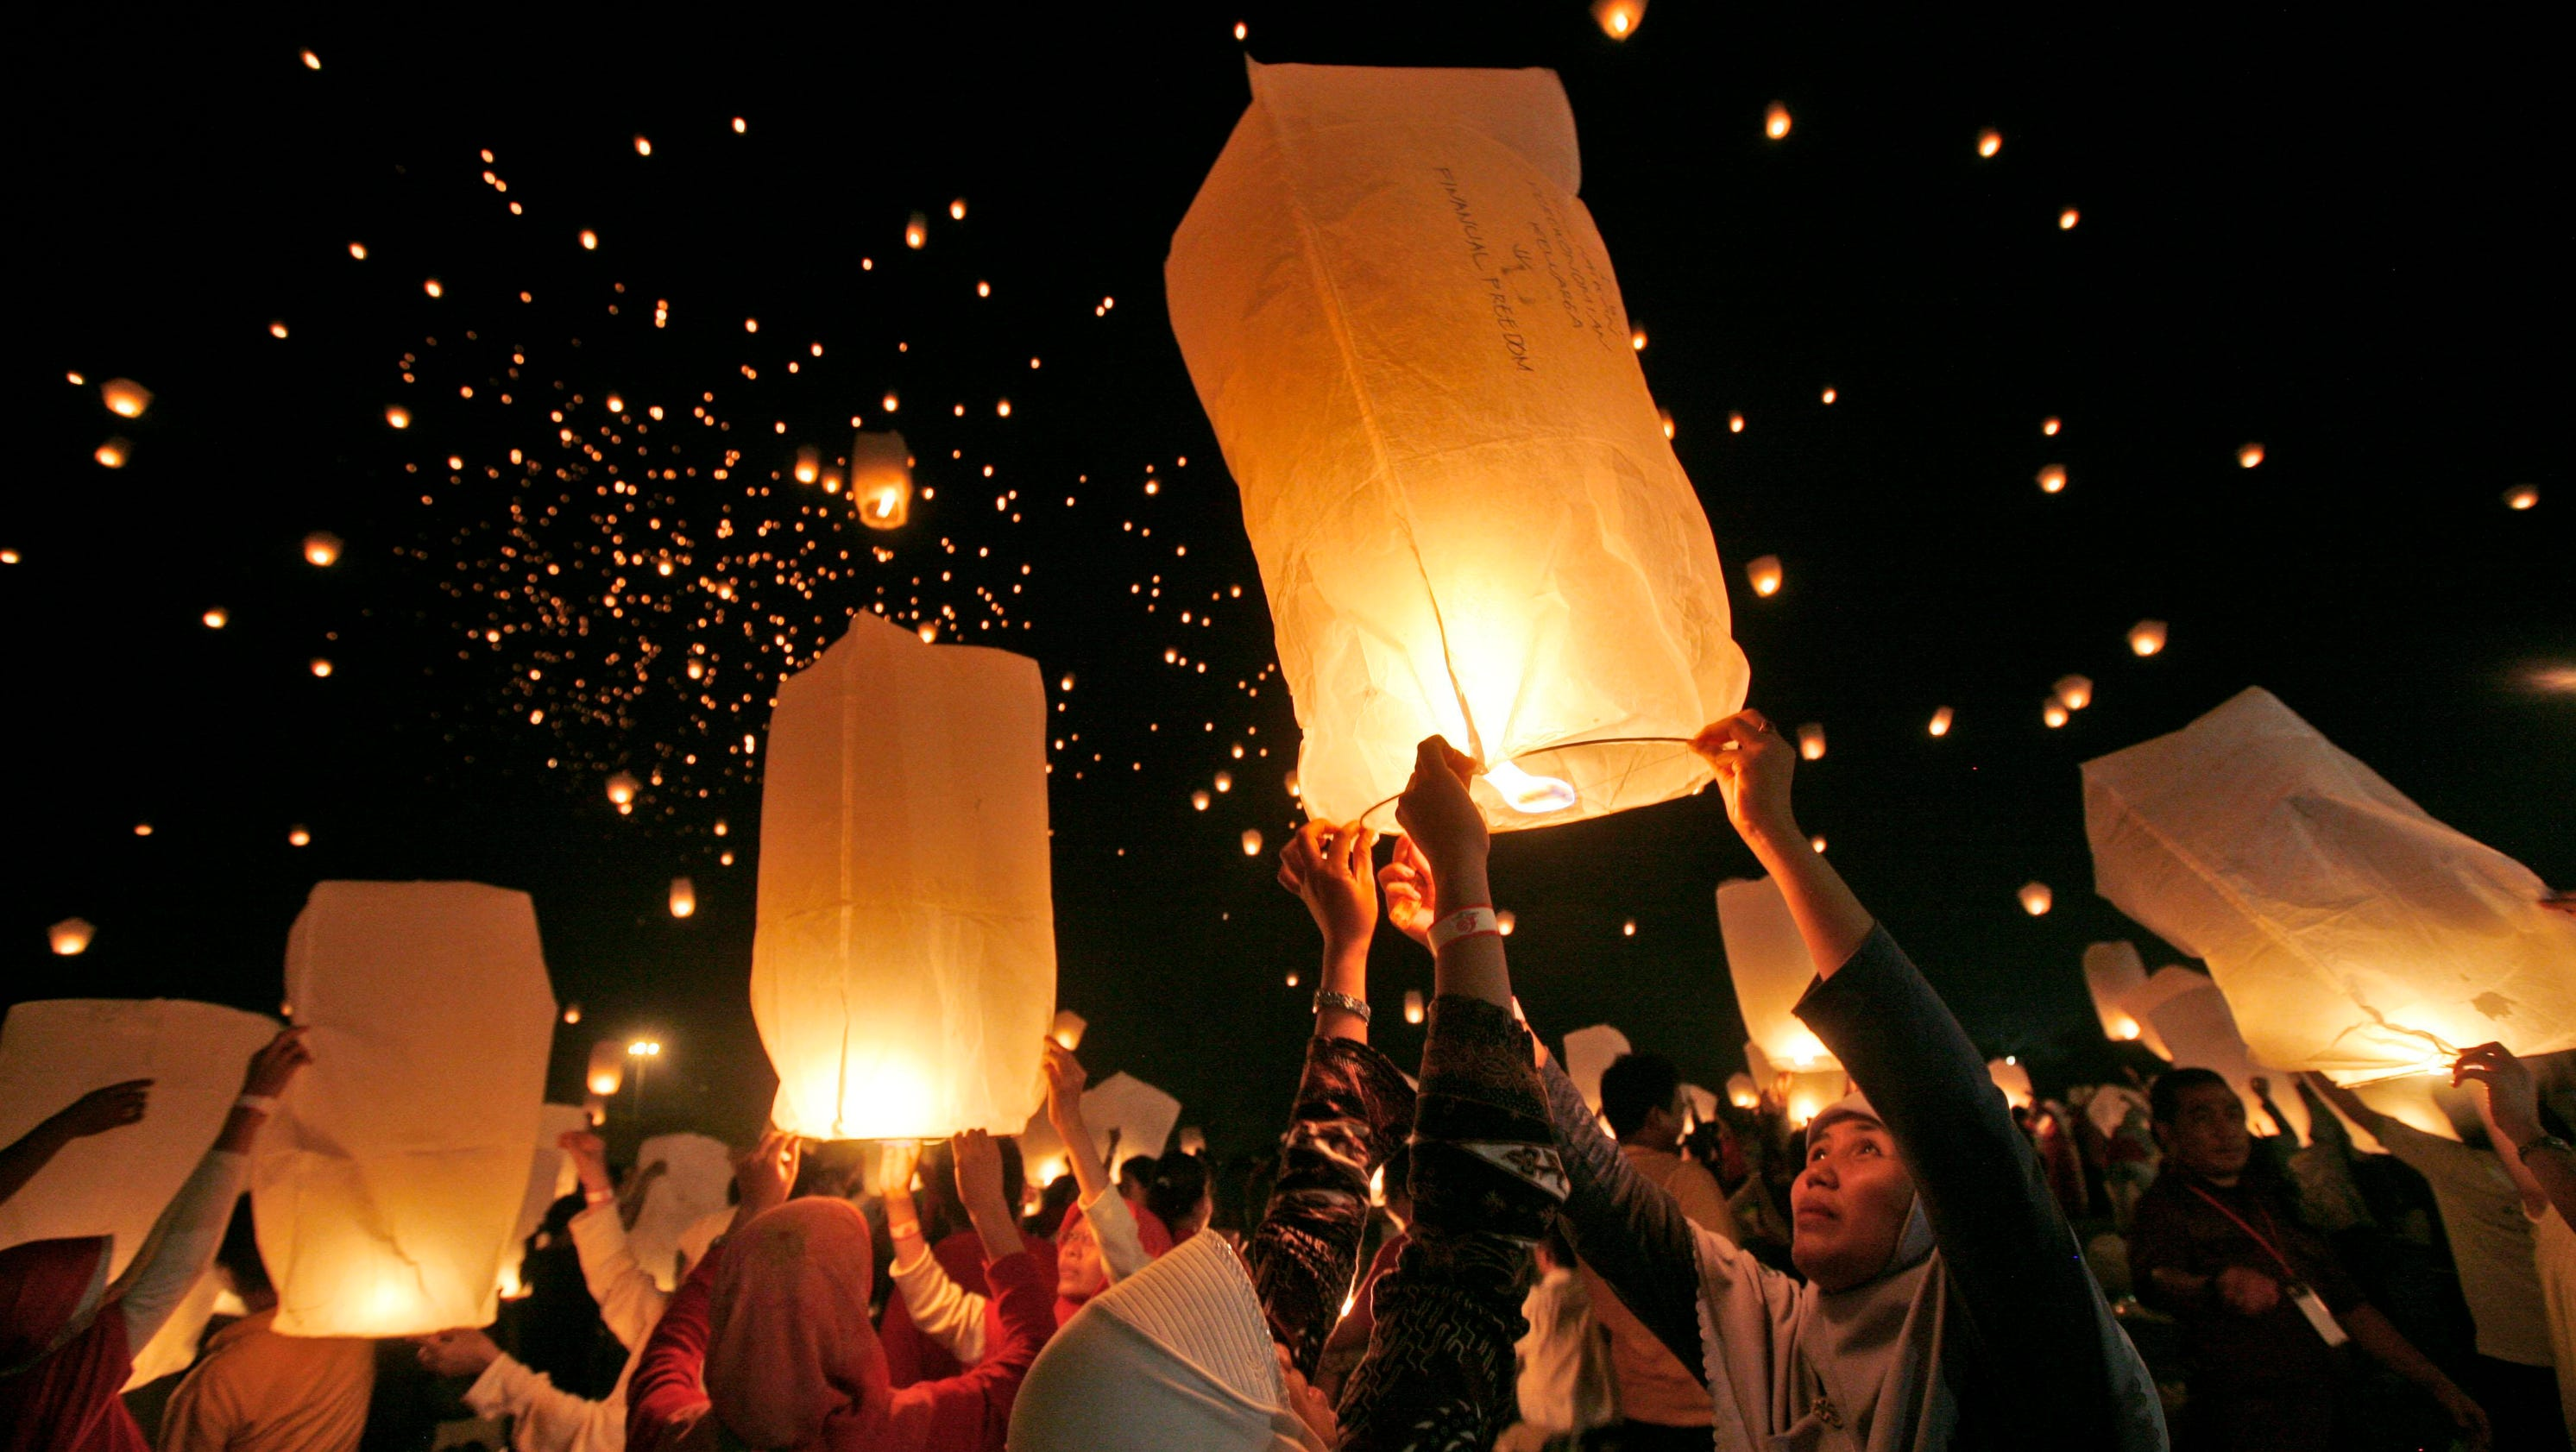 Fire Marshals Want To Ban Sky Lanterns